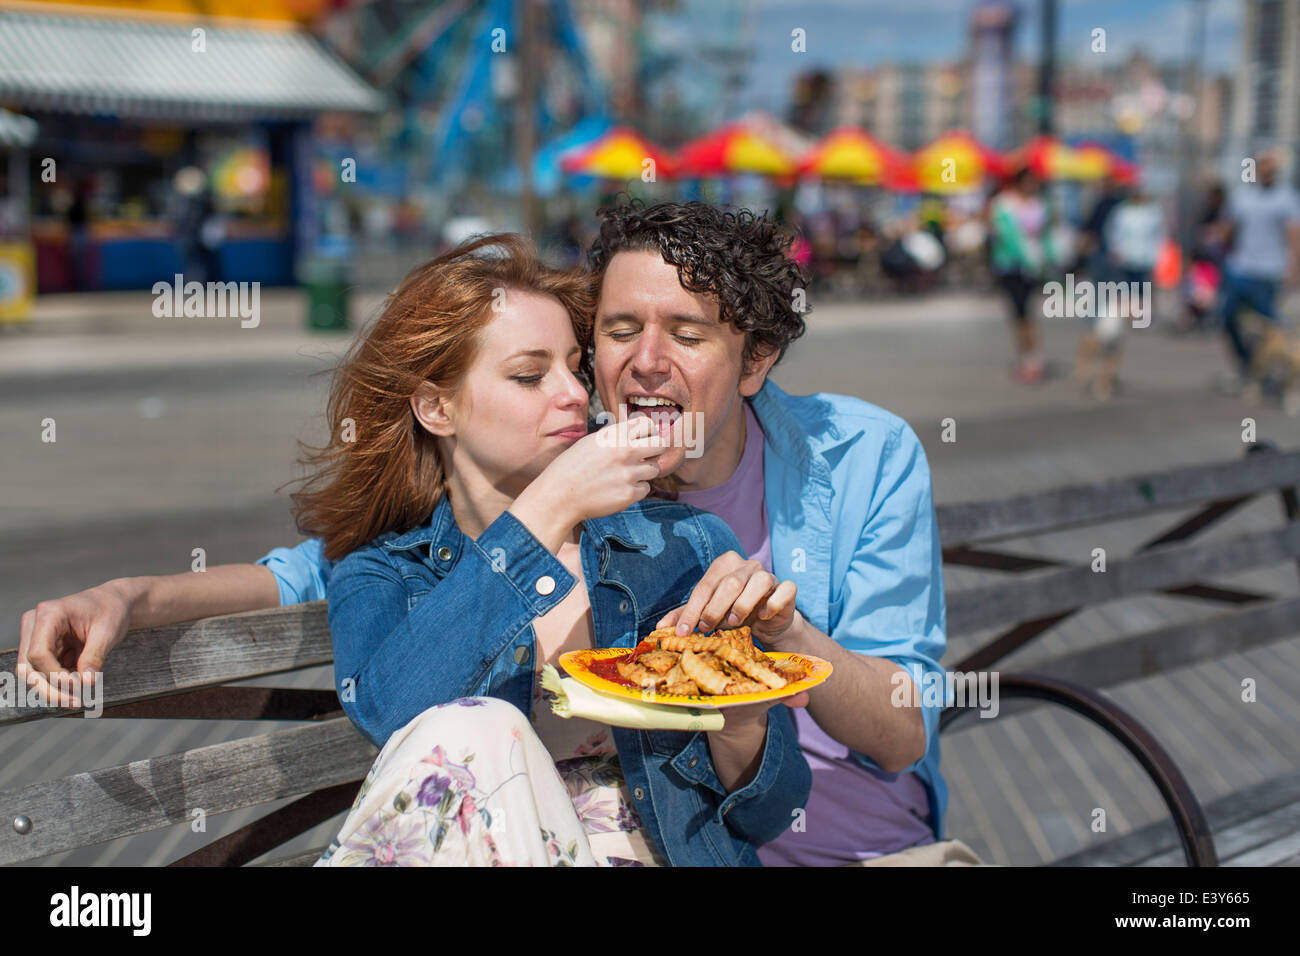 Romantic couple eating chips at amusement park Photo Stock